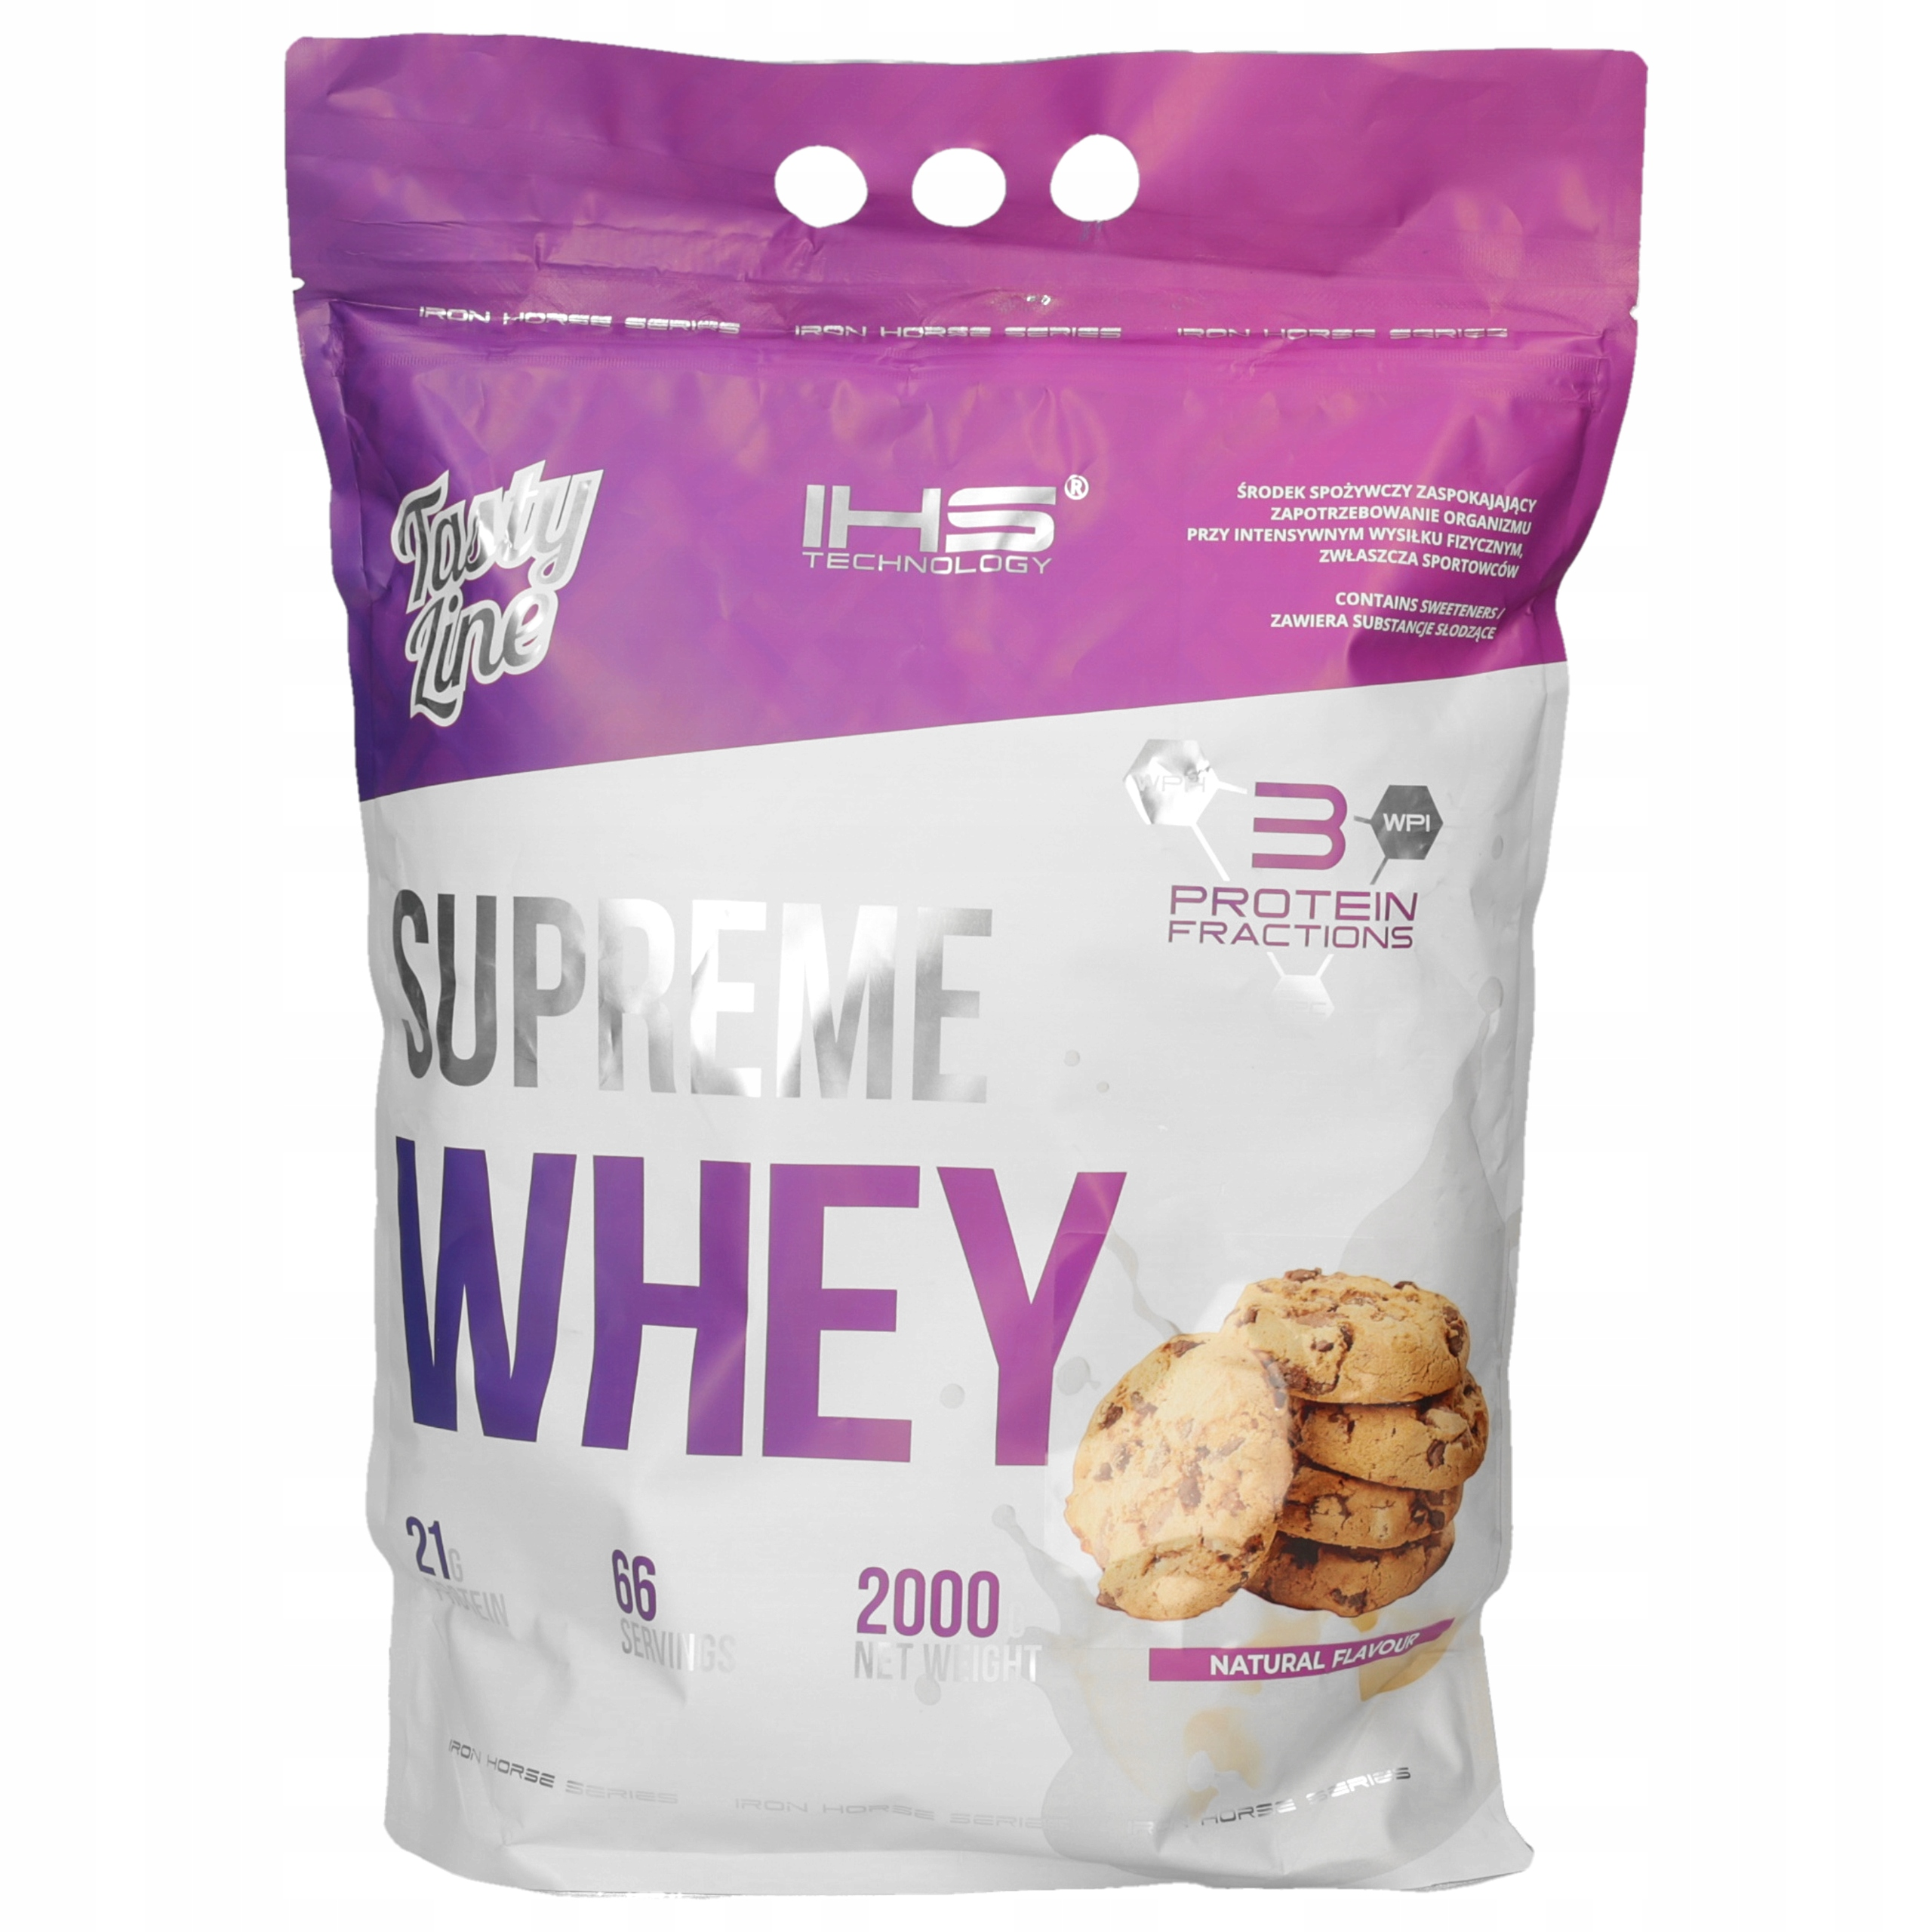 Supreme 100% Whey Protein 2000g - cookies